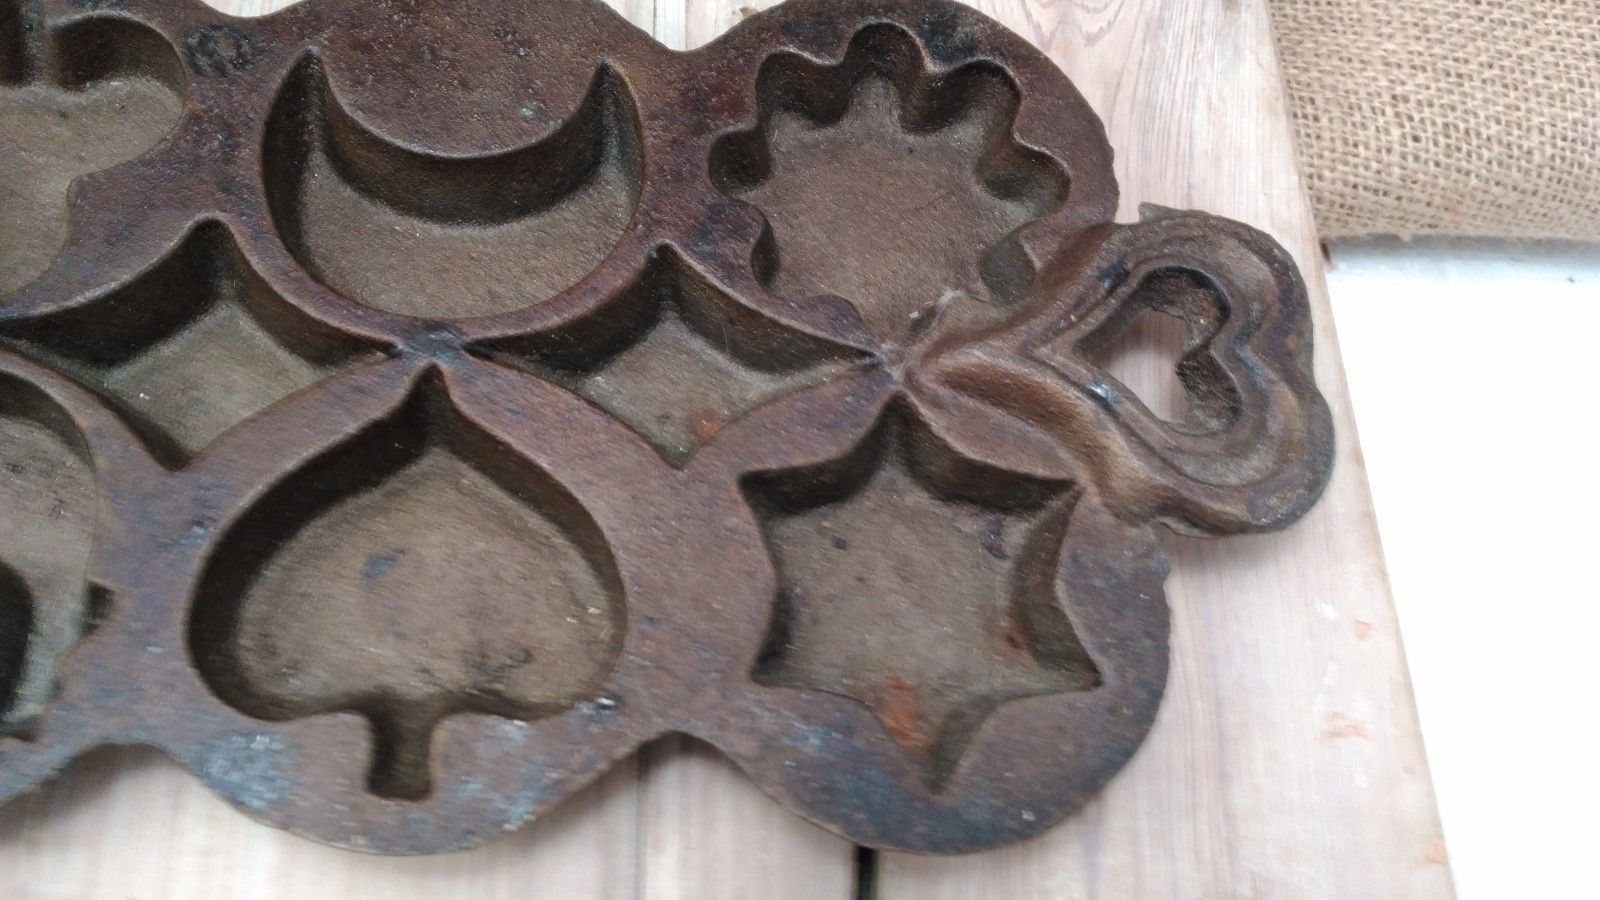 Vintage Cast iron mold cookies, cornbread, cakes, muffins, tree,spade,moon,house